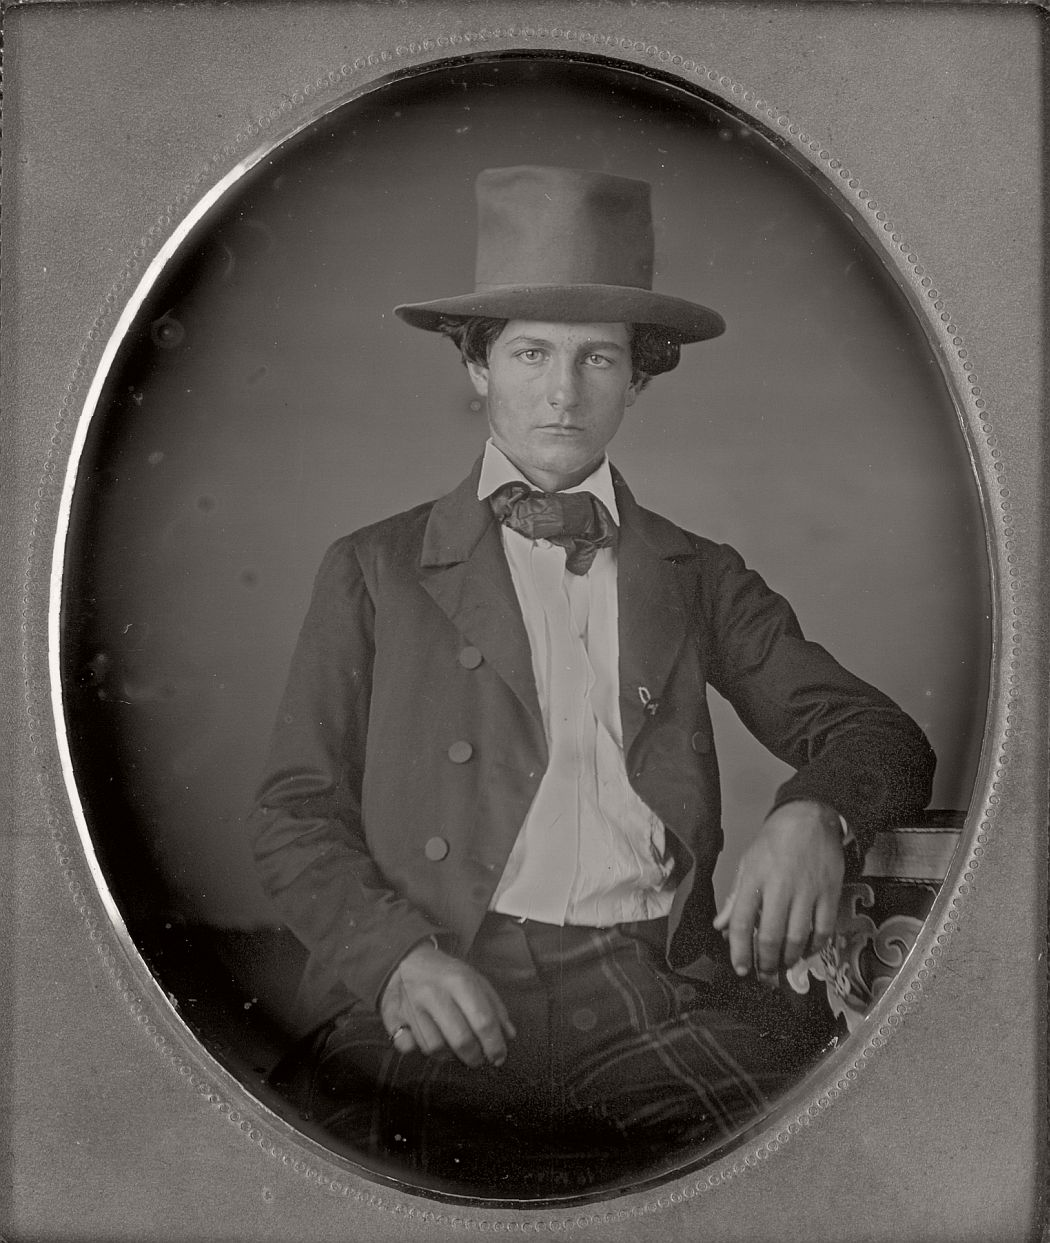 victorian-era-daguerreotype-of-men-in-hat-1850s-xix-century-21